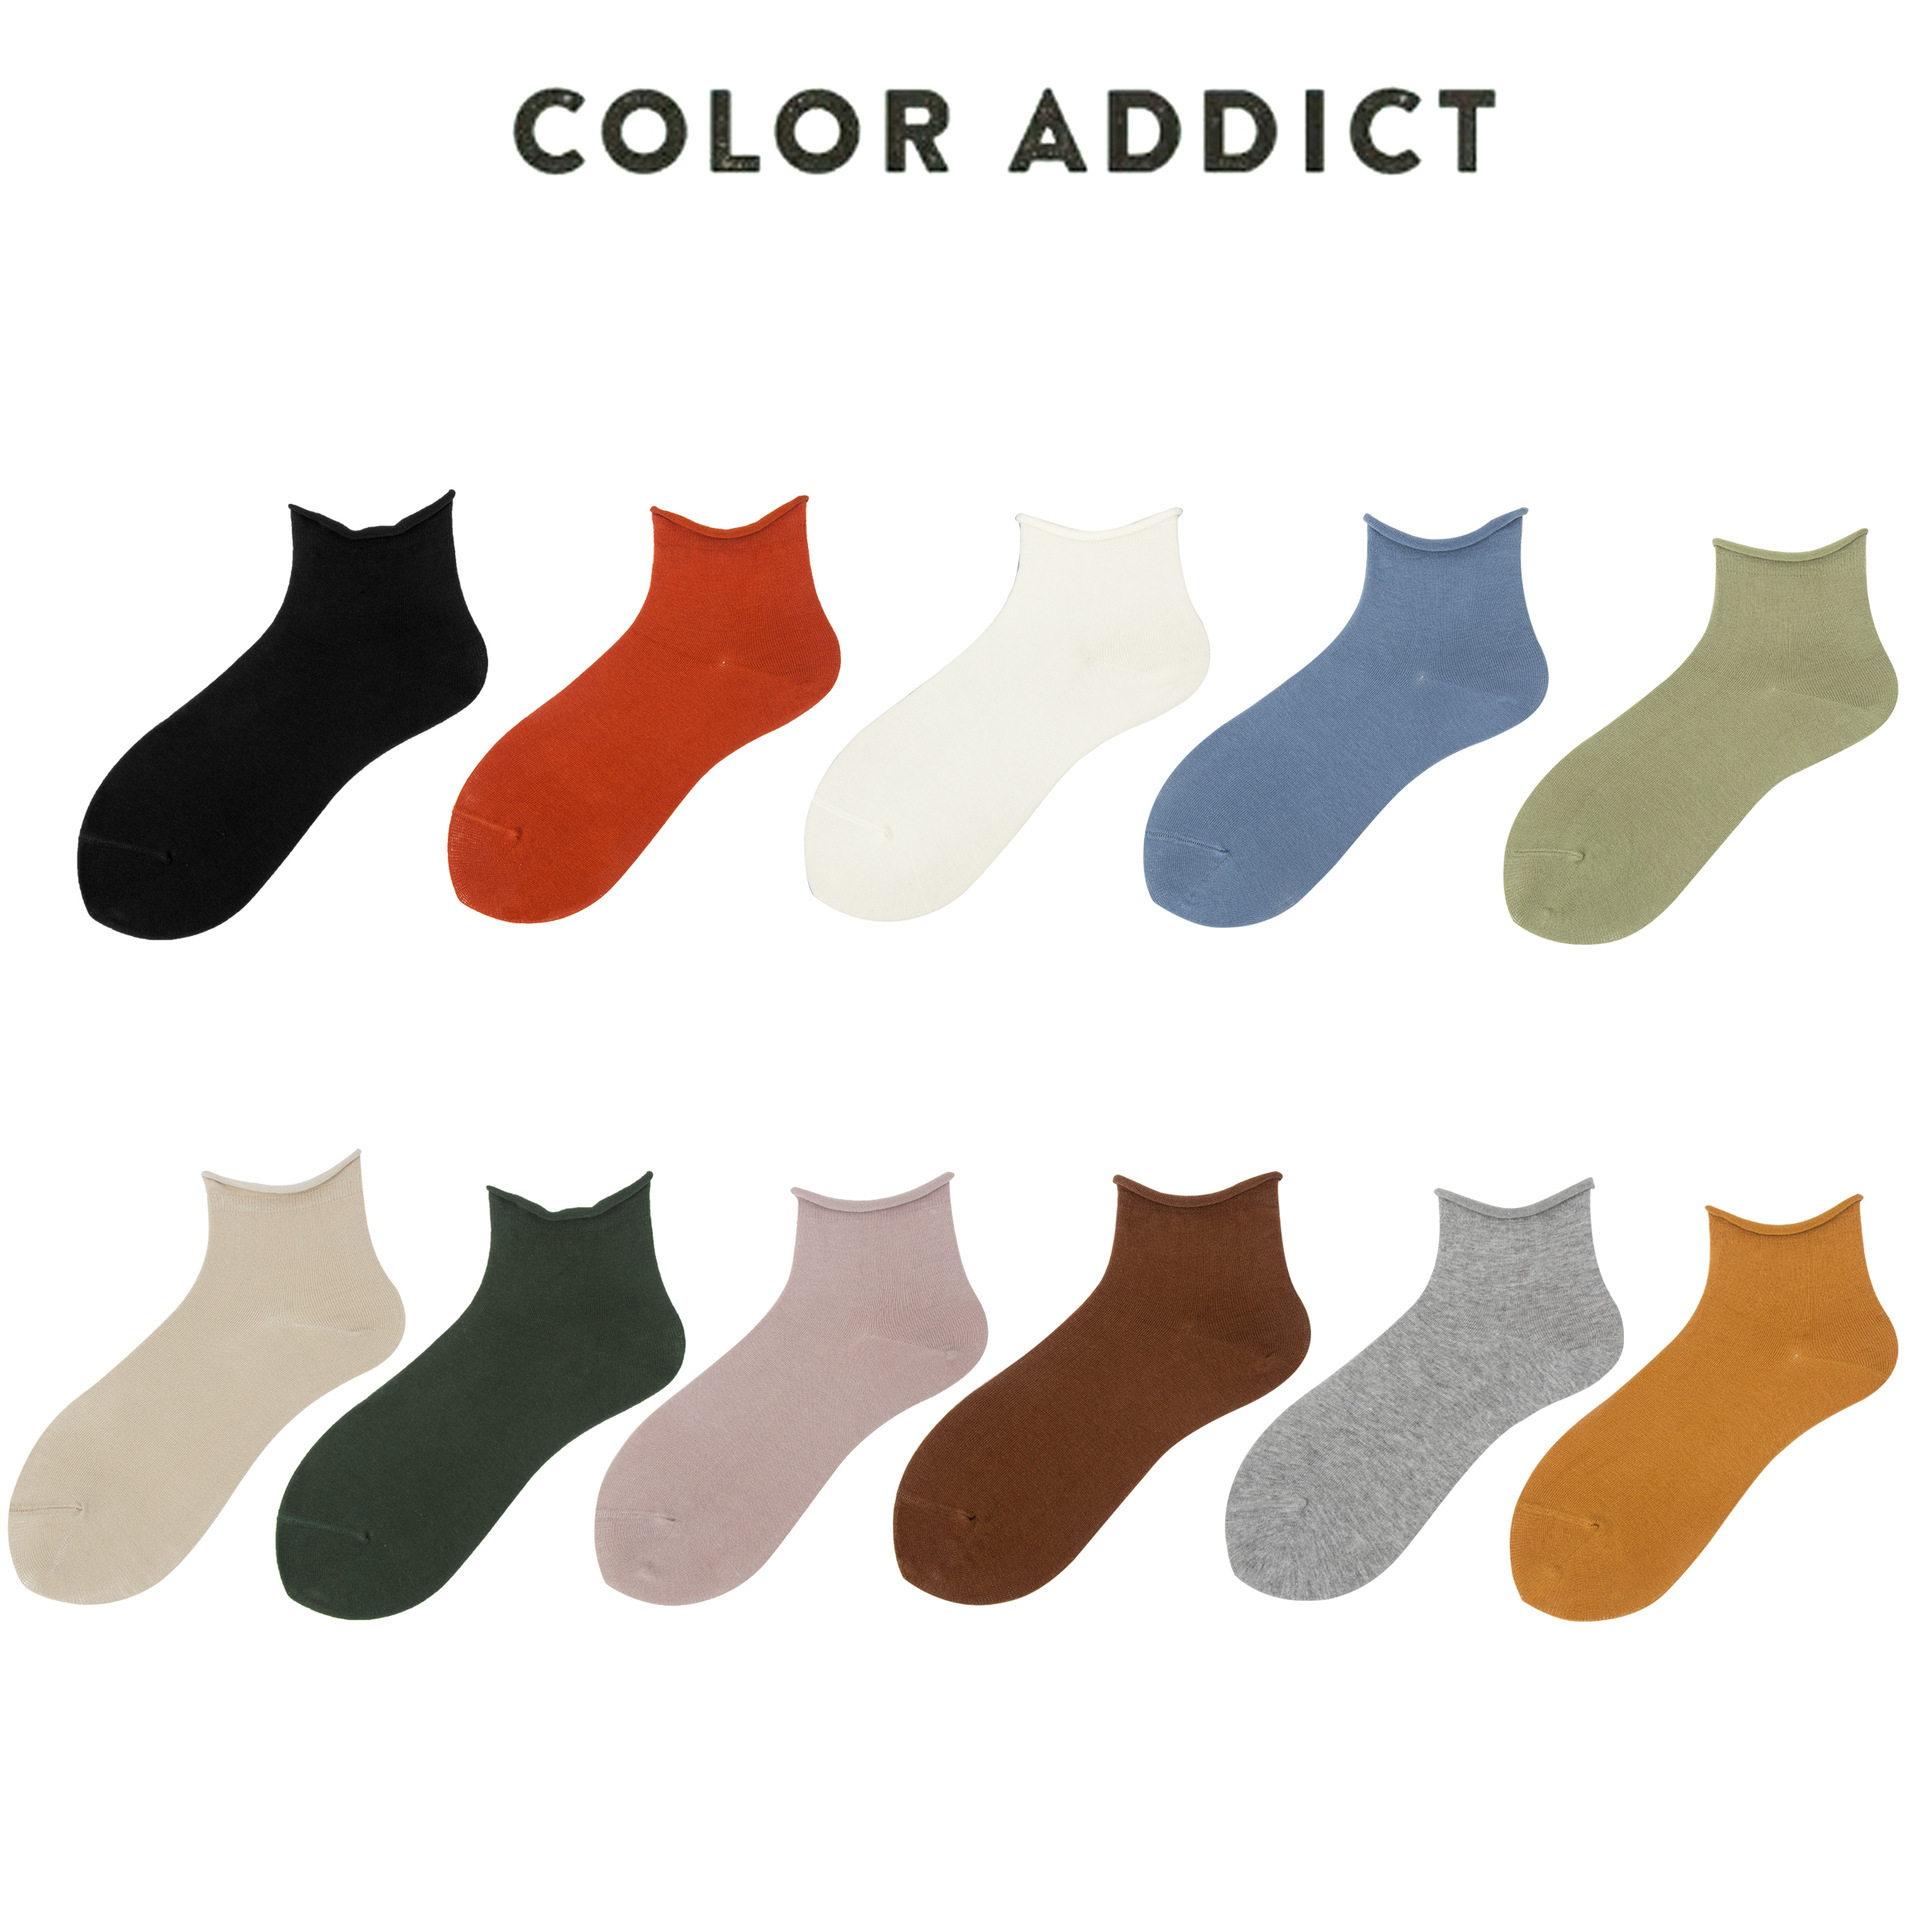 Women Socks 2019 New Fashion 1 Pair Ankle Socks Girls Cotton Solid Color Candy Casual Breathable Socks Women Fashion Socks Lady